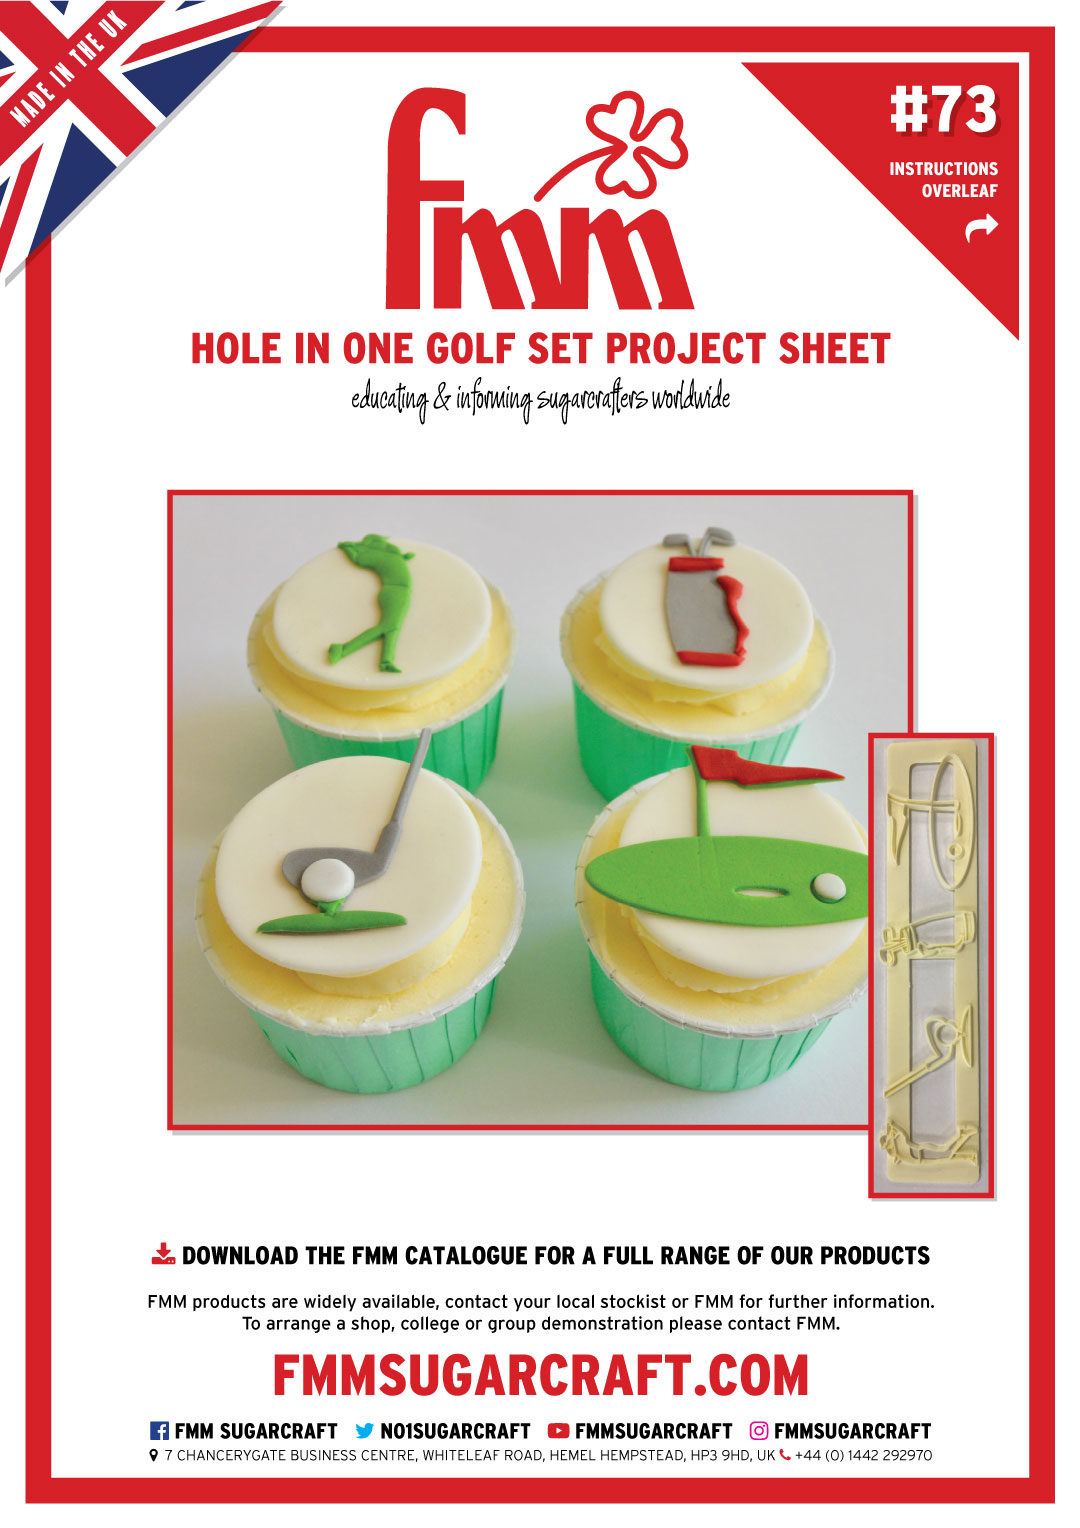 Hole in One Golf, Project Sheet 73